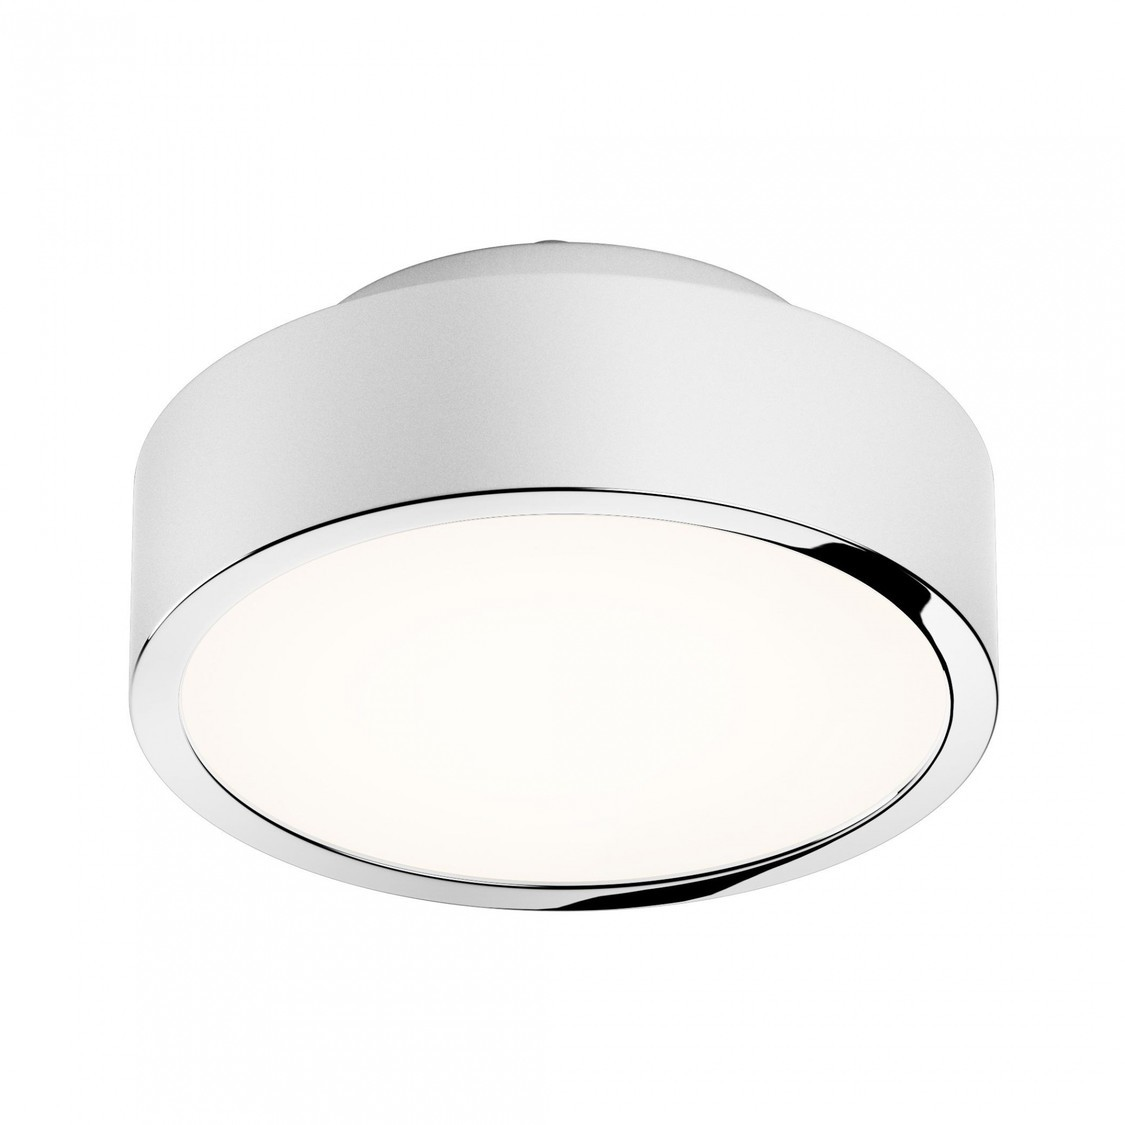 Decor Walther Round 20 Ceiling Lamp | AmbienteDirect